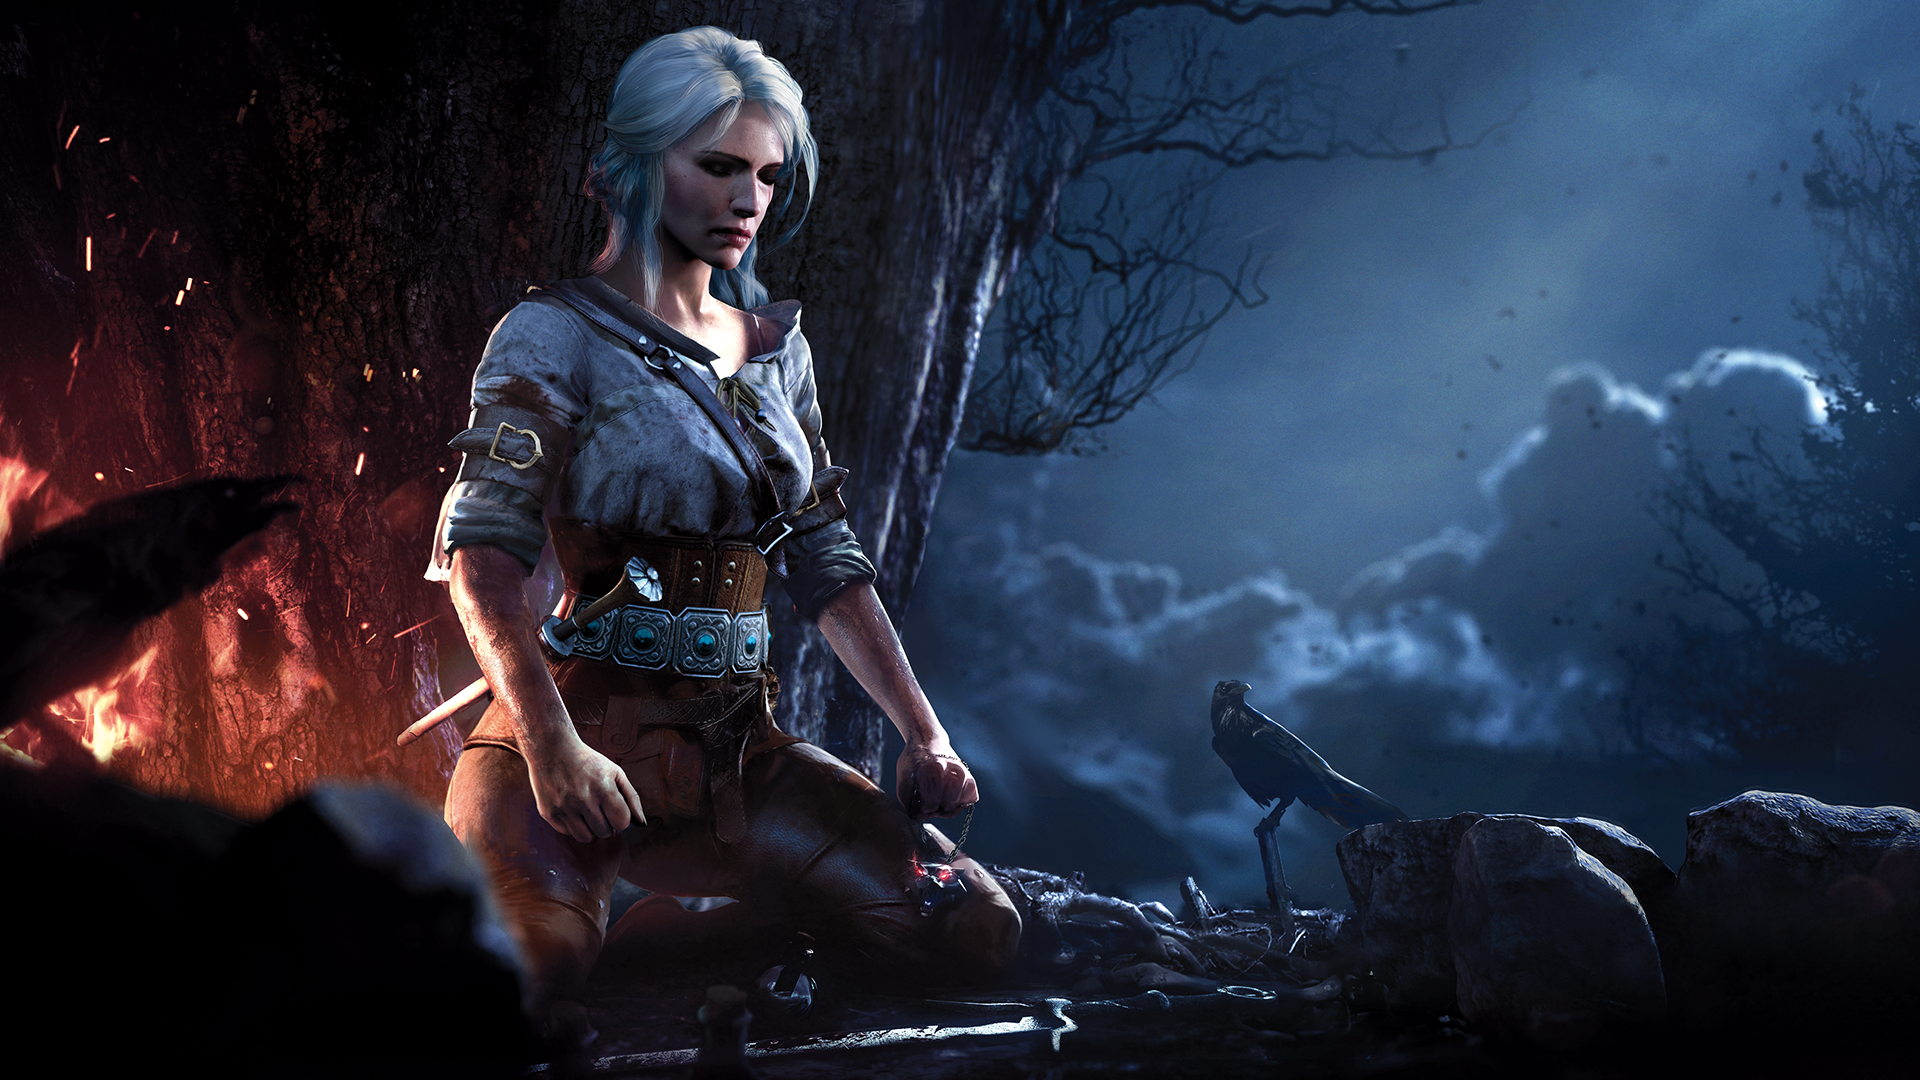 Ciri Meditating Wallpaper The Witcher The Witcher 3